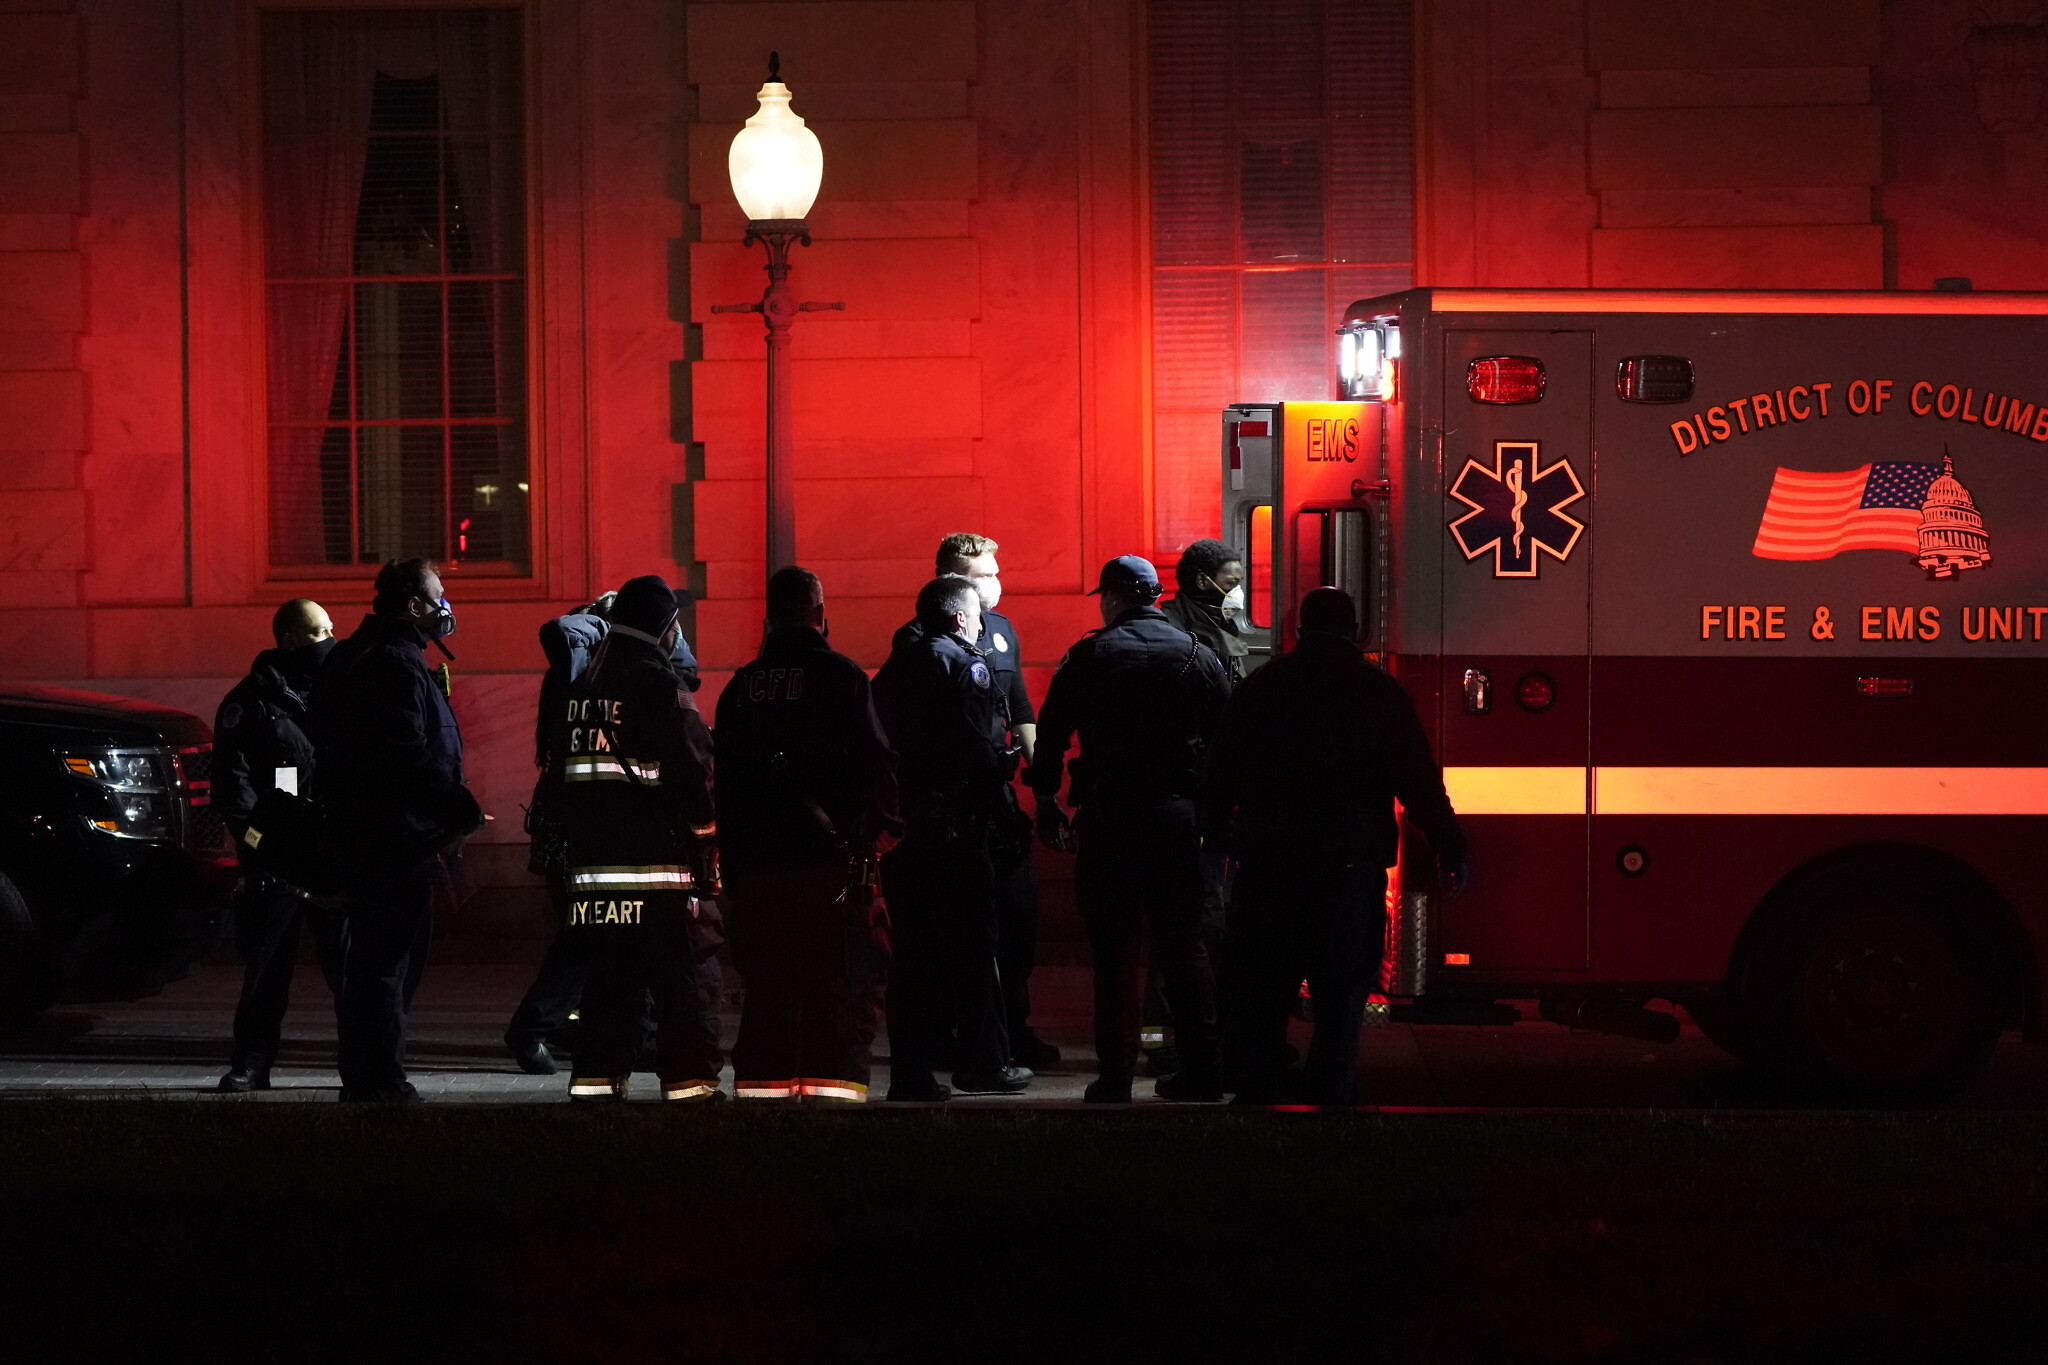 Capitol police officer dies after clash with rioters, officials say